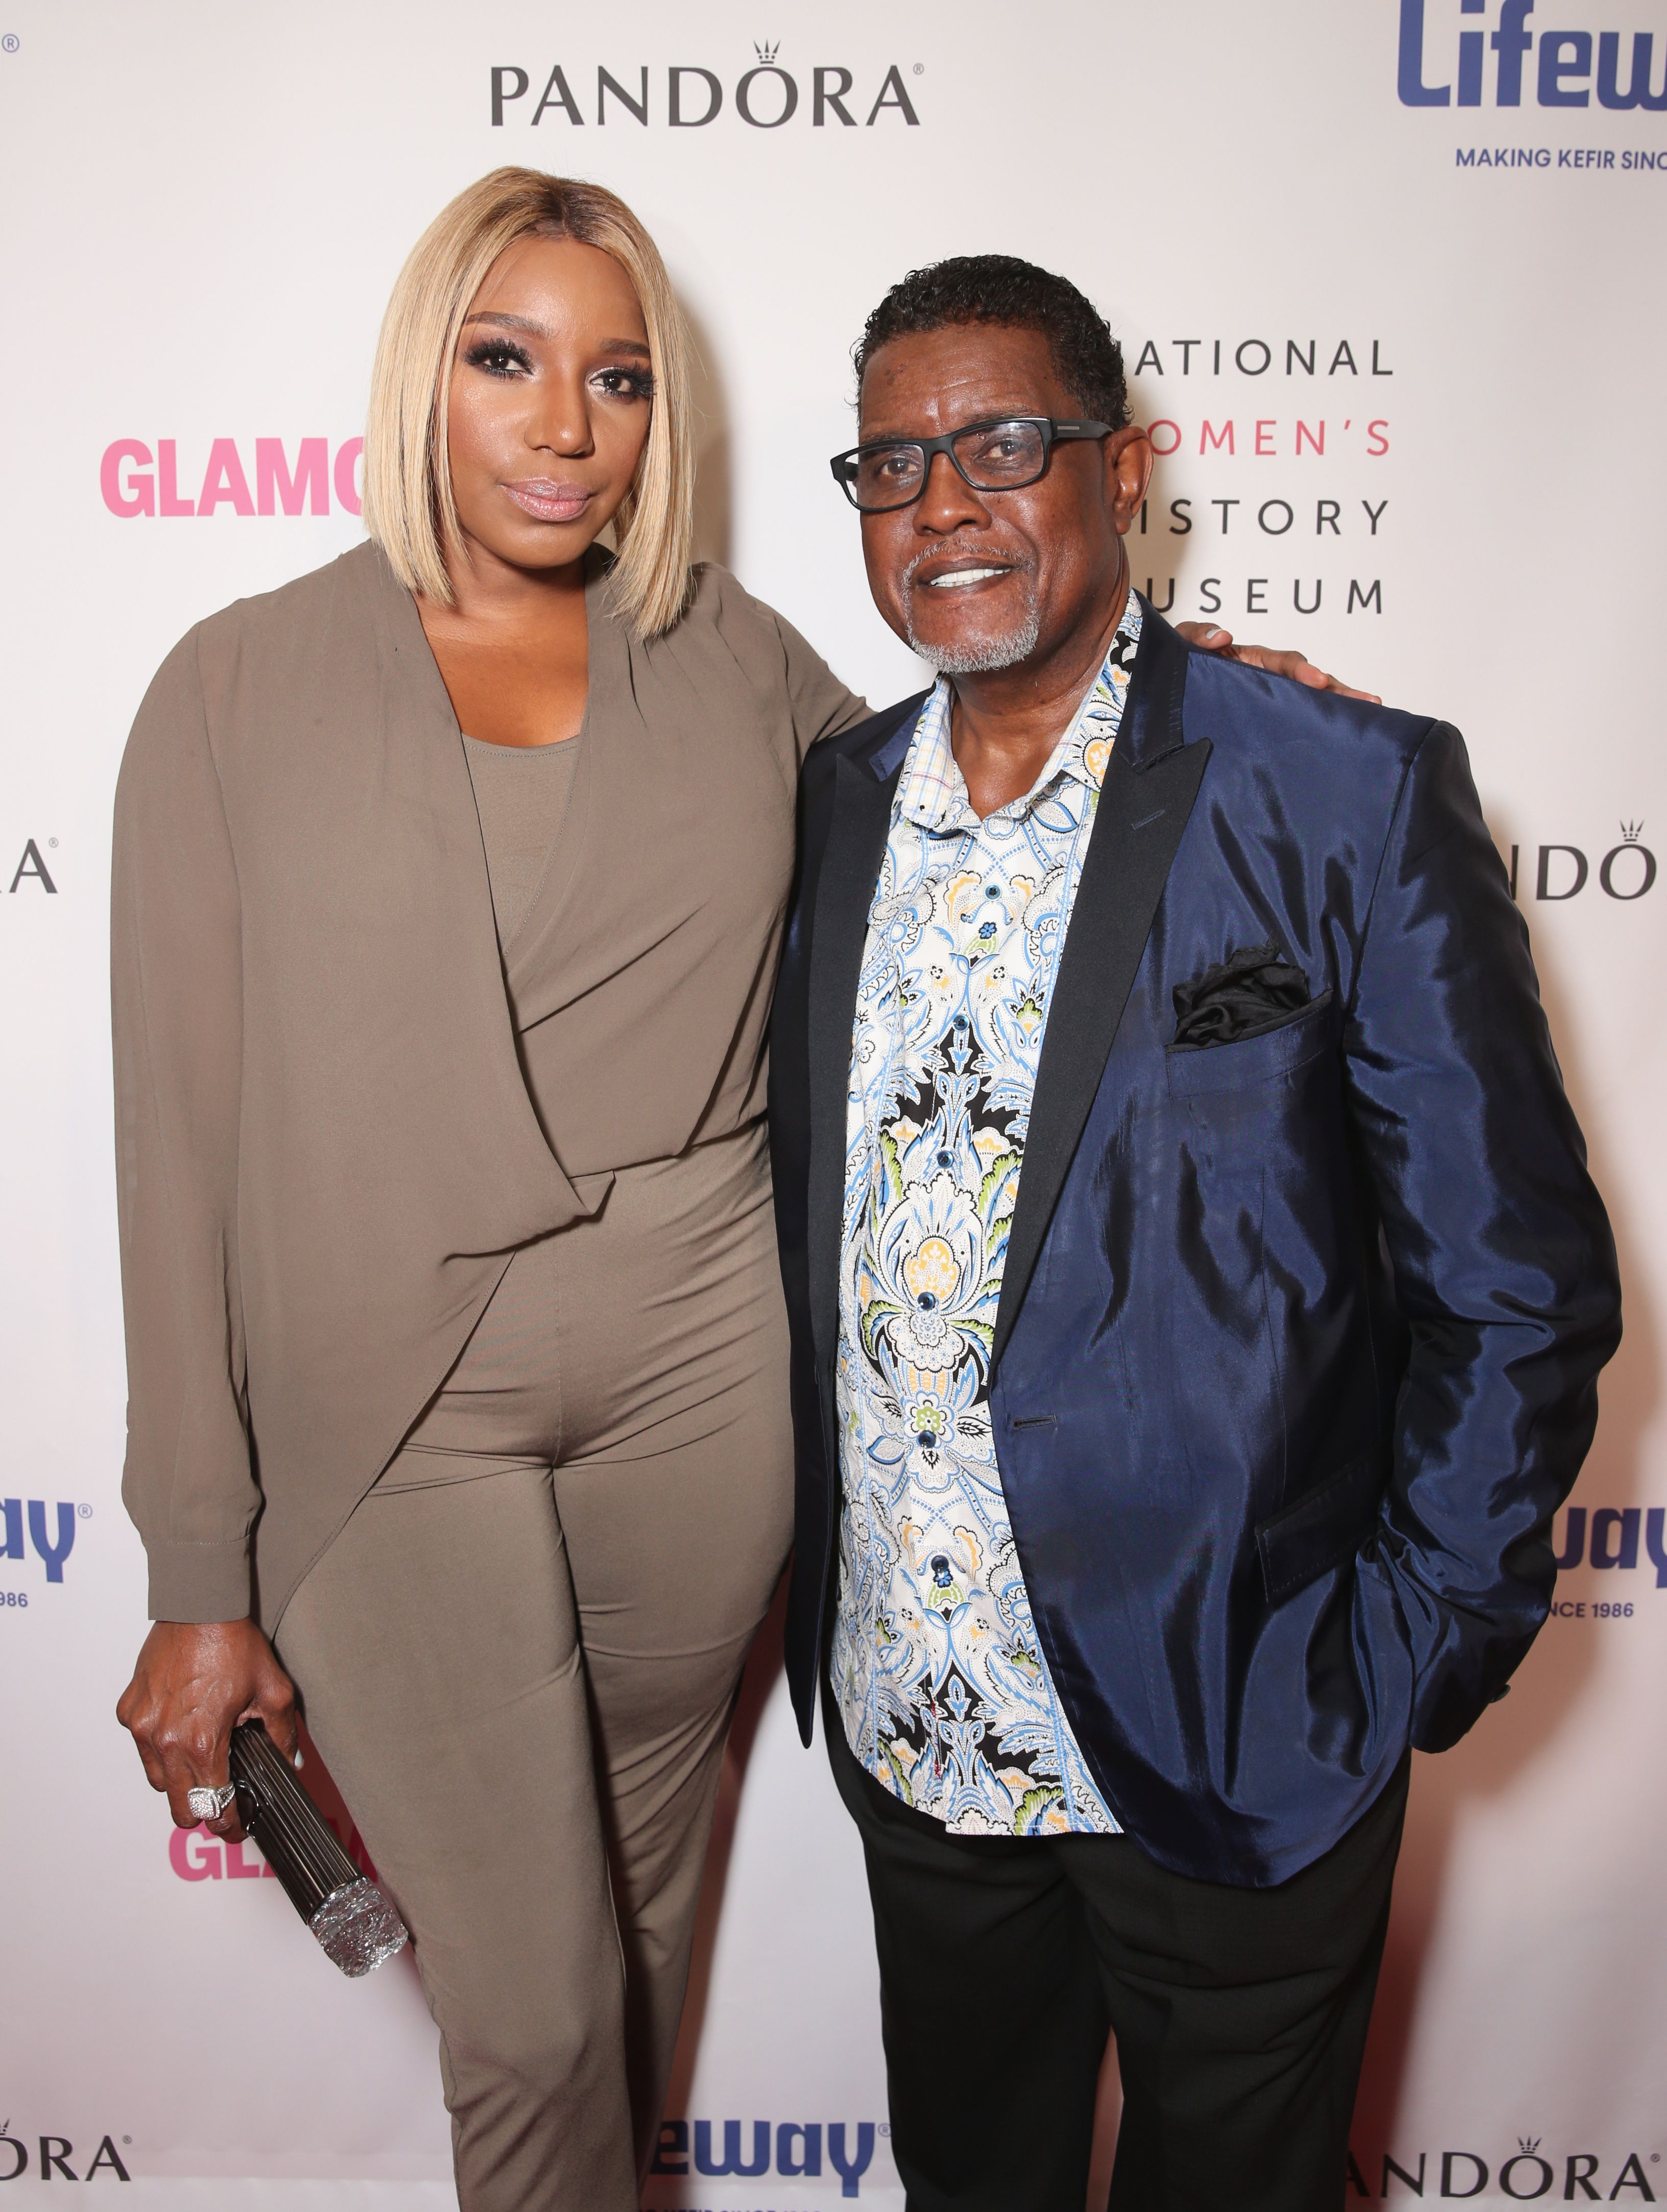 NeNe and Gregg Leakes attend the National Women's History Museum Brunch in Los Angeles on September 17, 2016 | Source: Getty Images